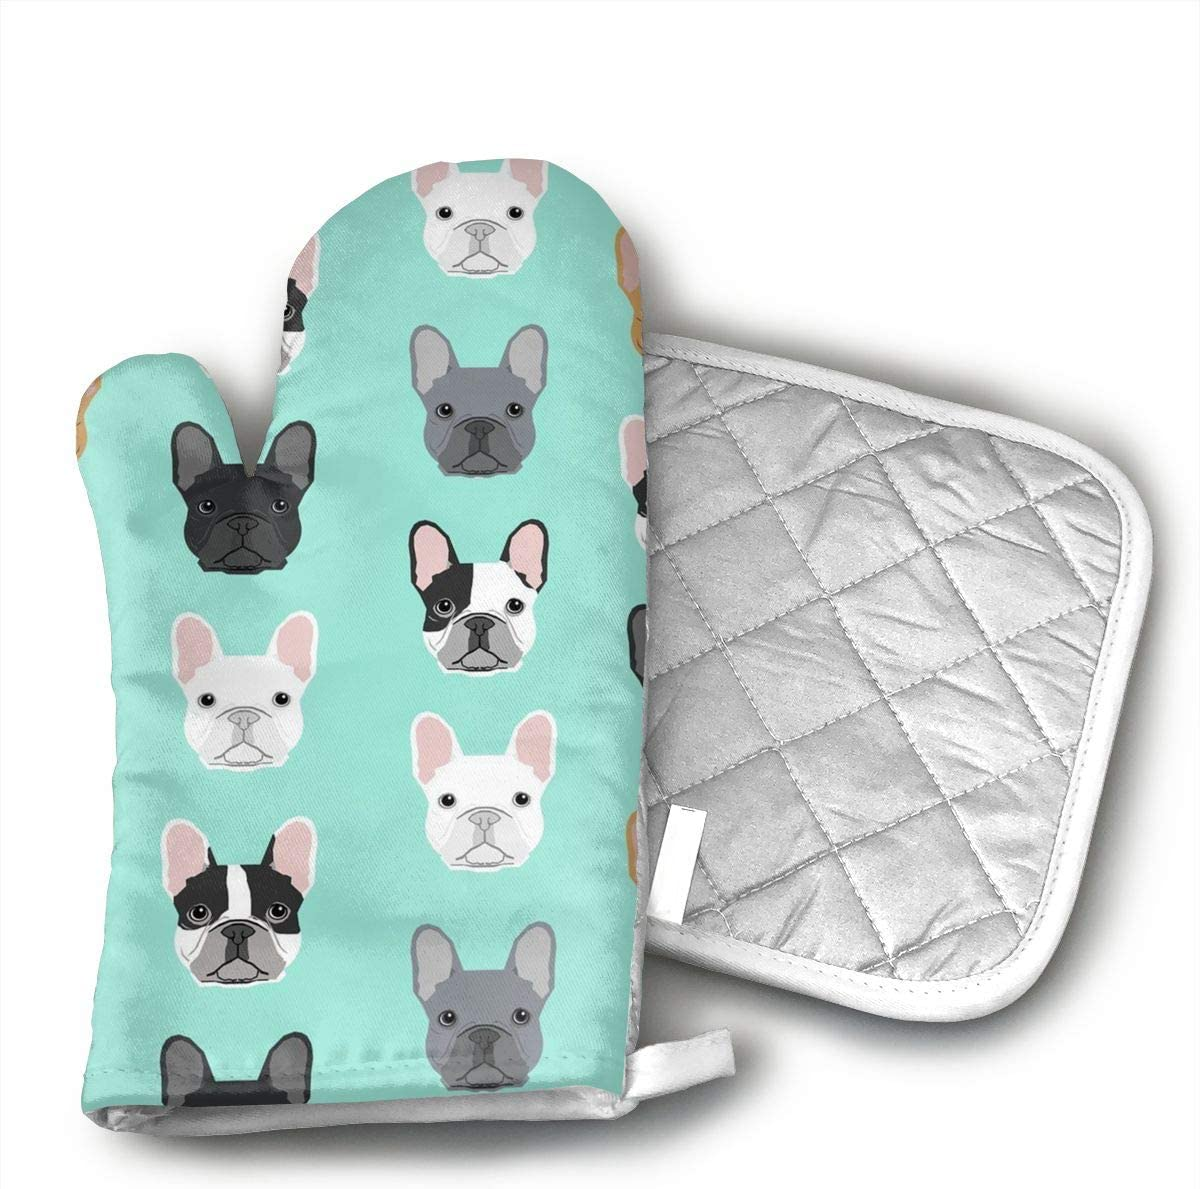 QEDGC French Bulldog Sweet Dog Puppy Puppies Dog Oven Mitts of Quilted Cotton Lining - Heat Resistant Kitchen Gloves,Flame Oven Mitt Set